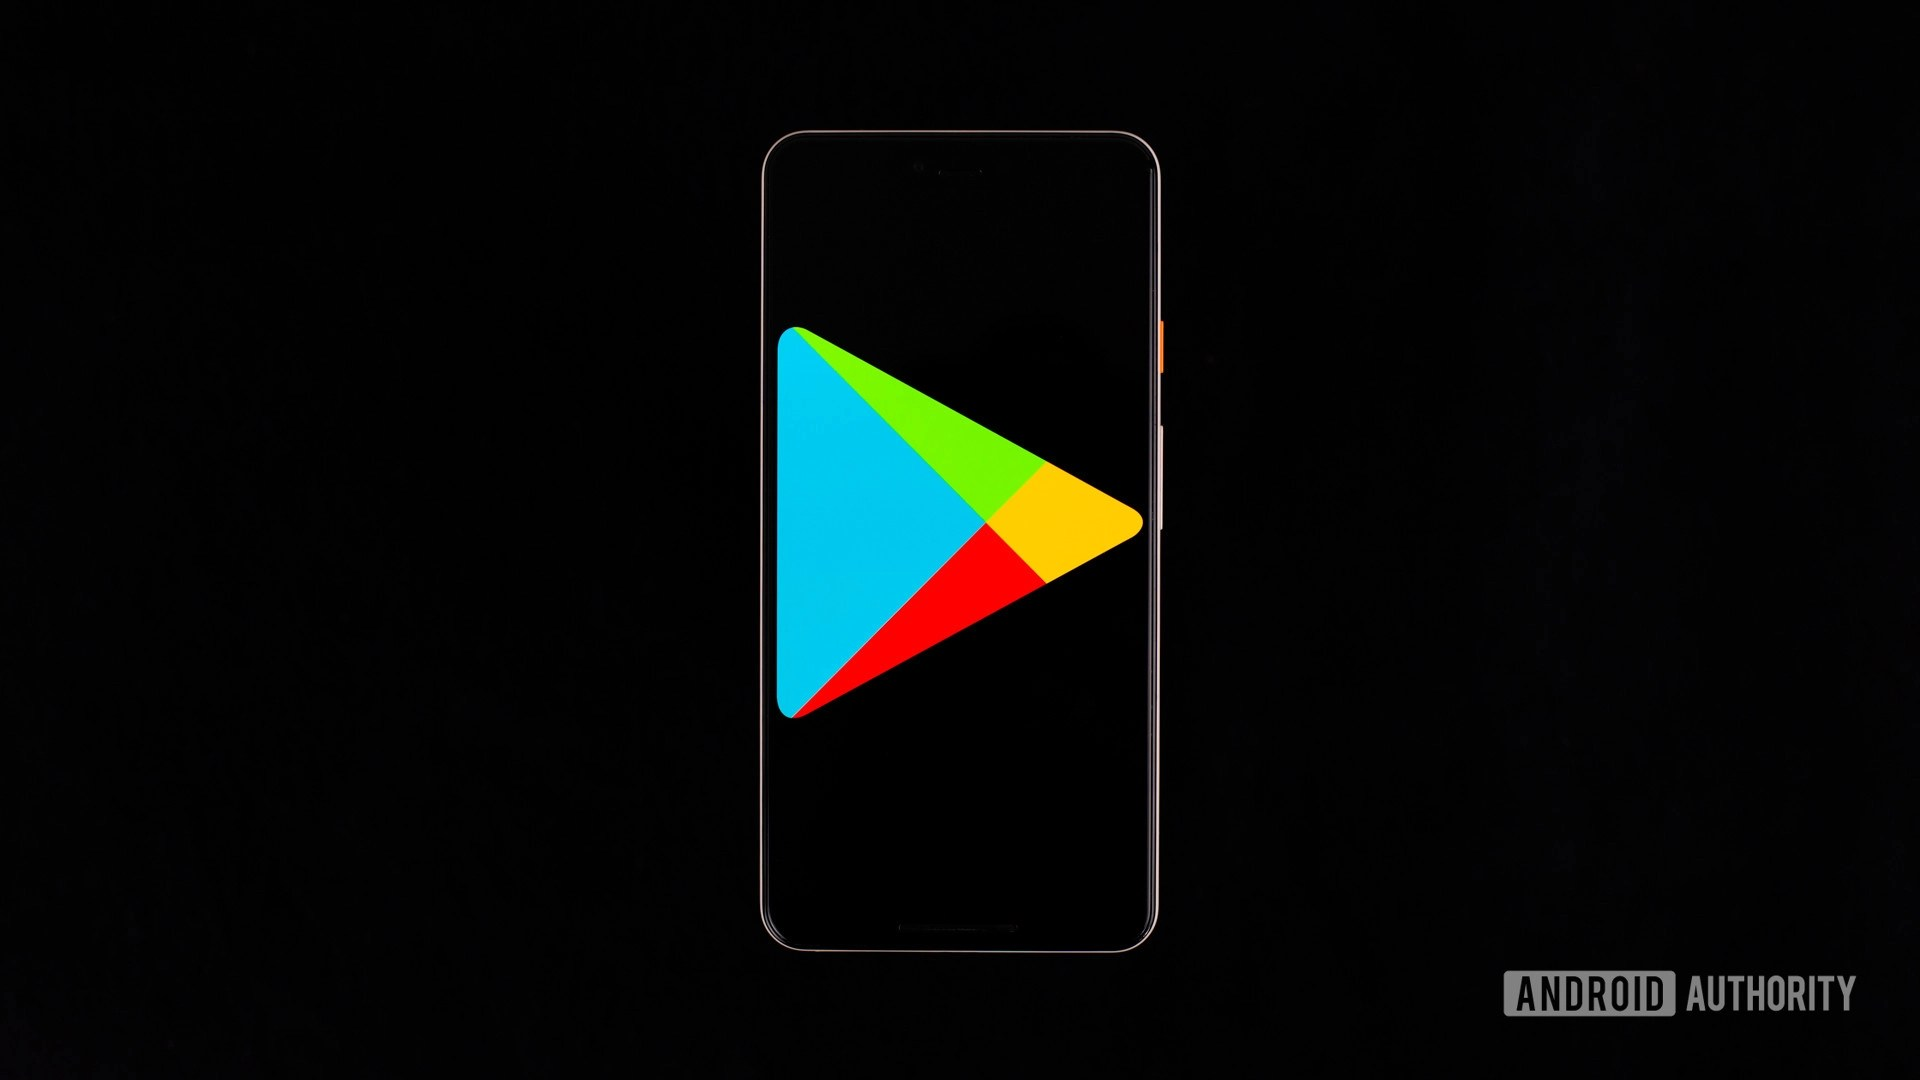 Google Play Store on smartphone stock photo 1